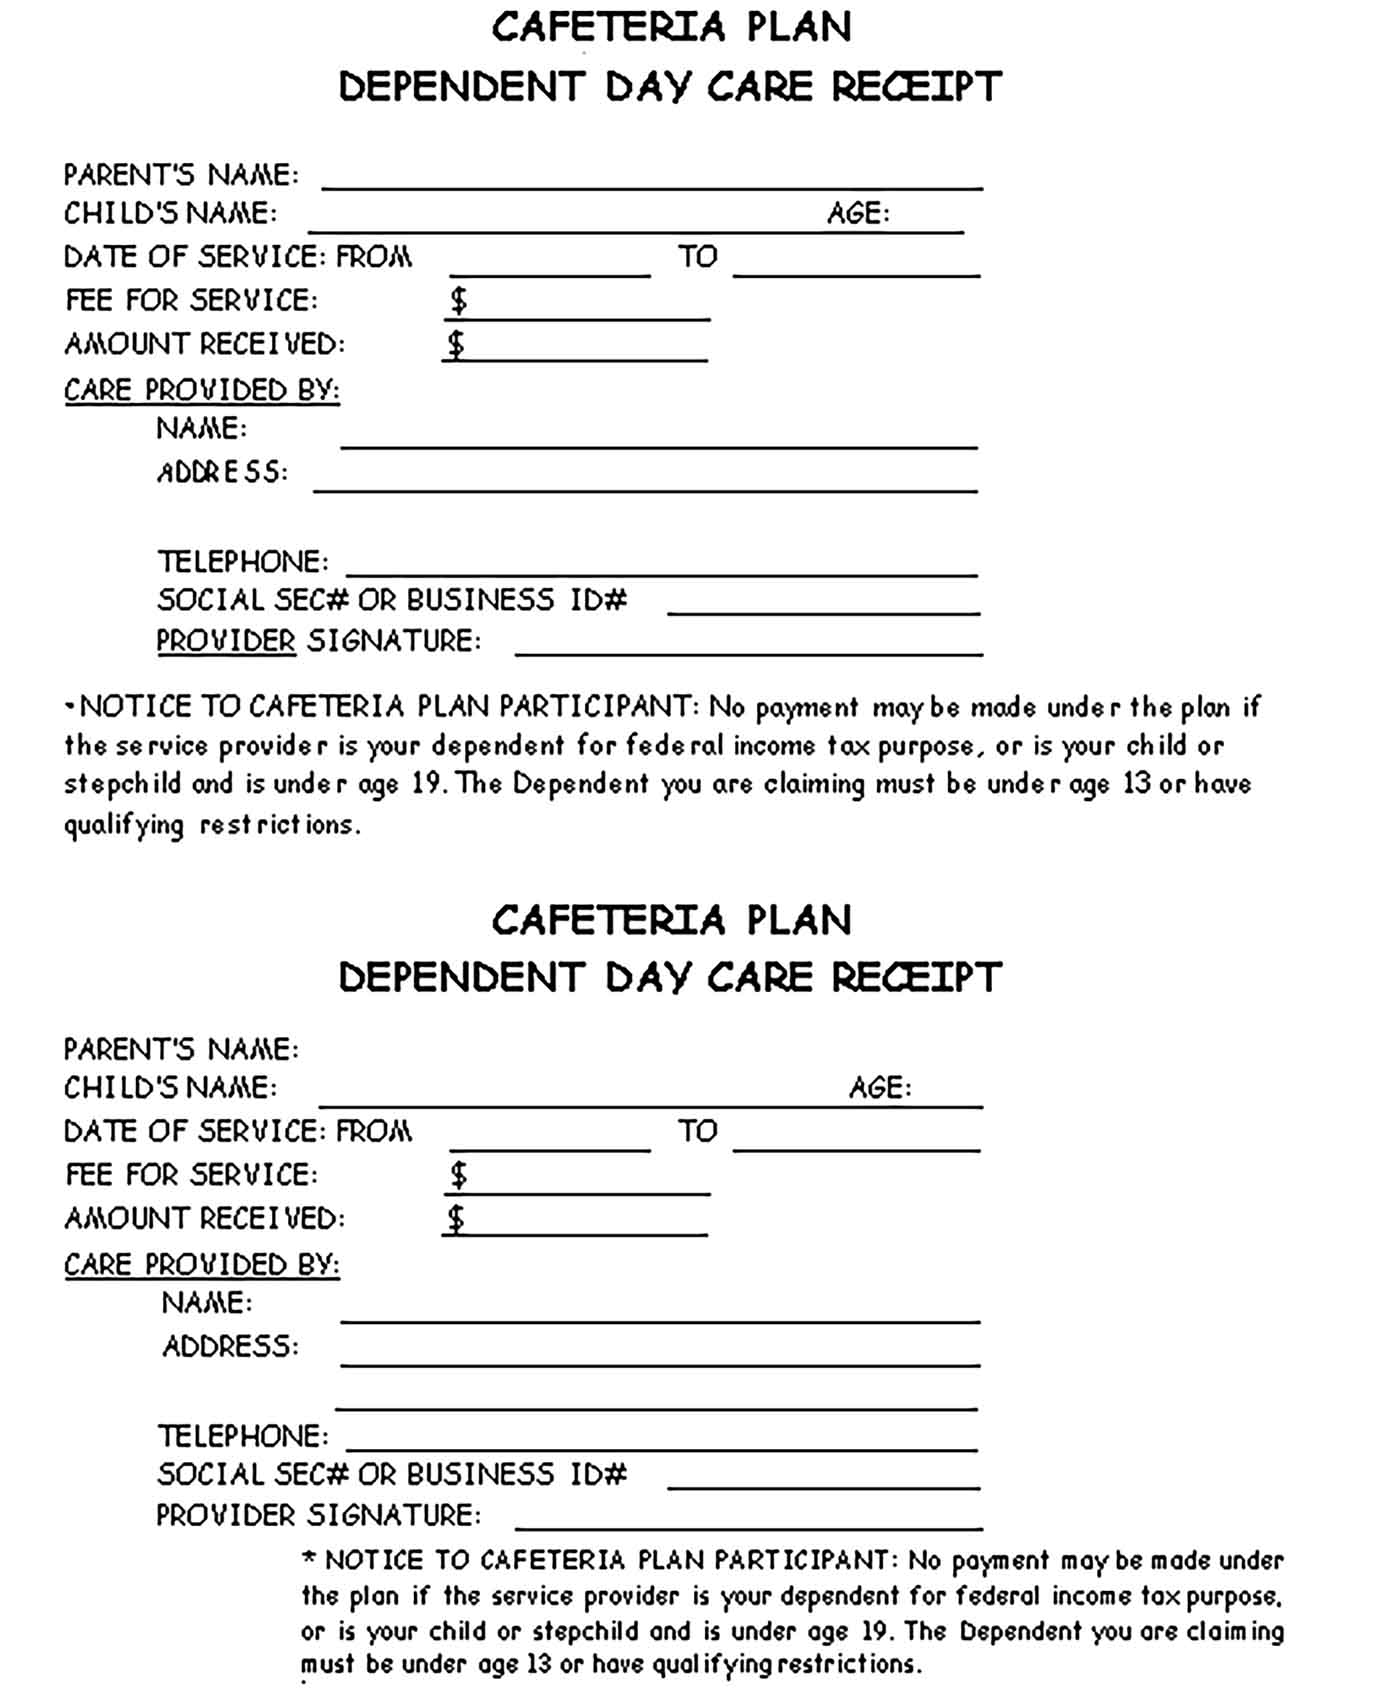 Sample Dependent Day Care Receipt Templates